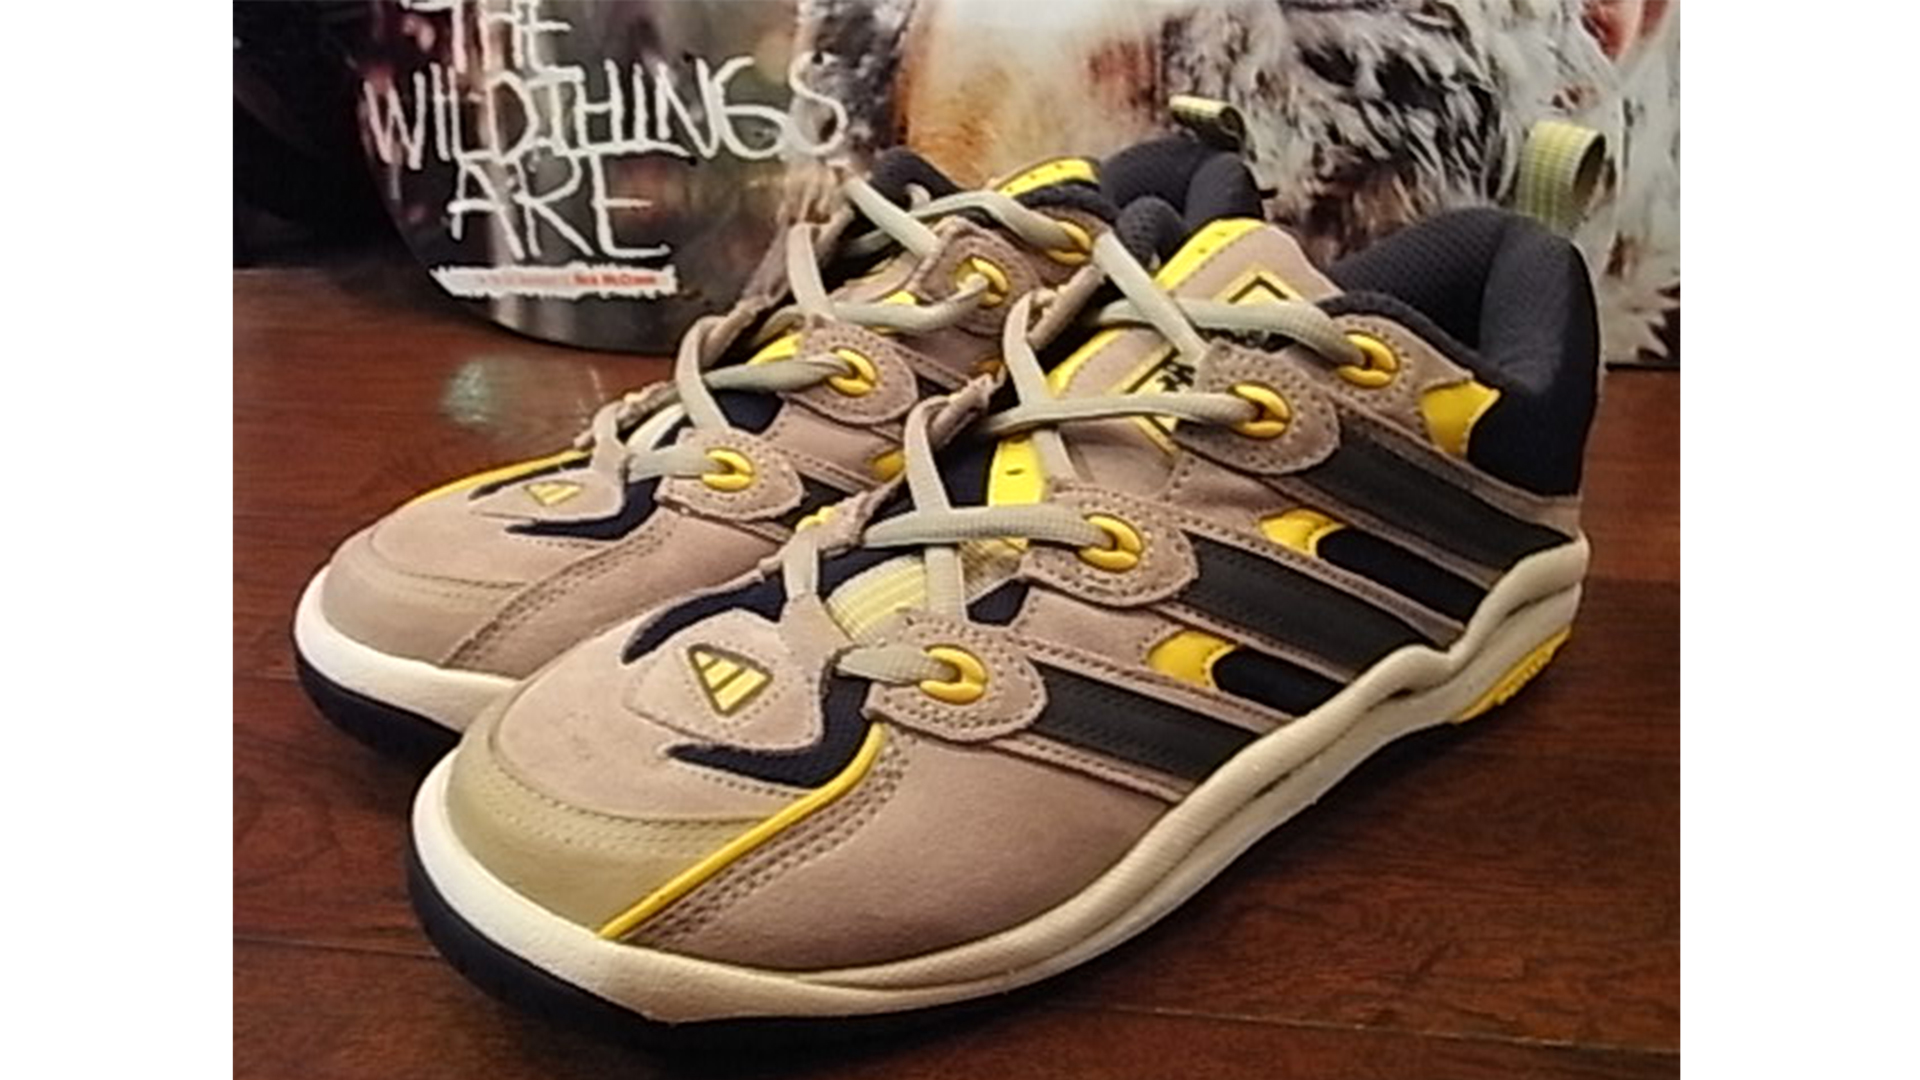 12 of the Ugliest Skate Shoes Ever Made